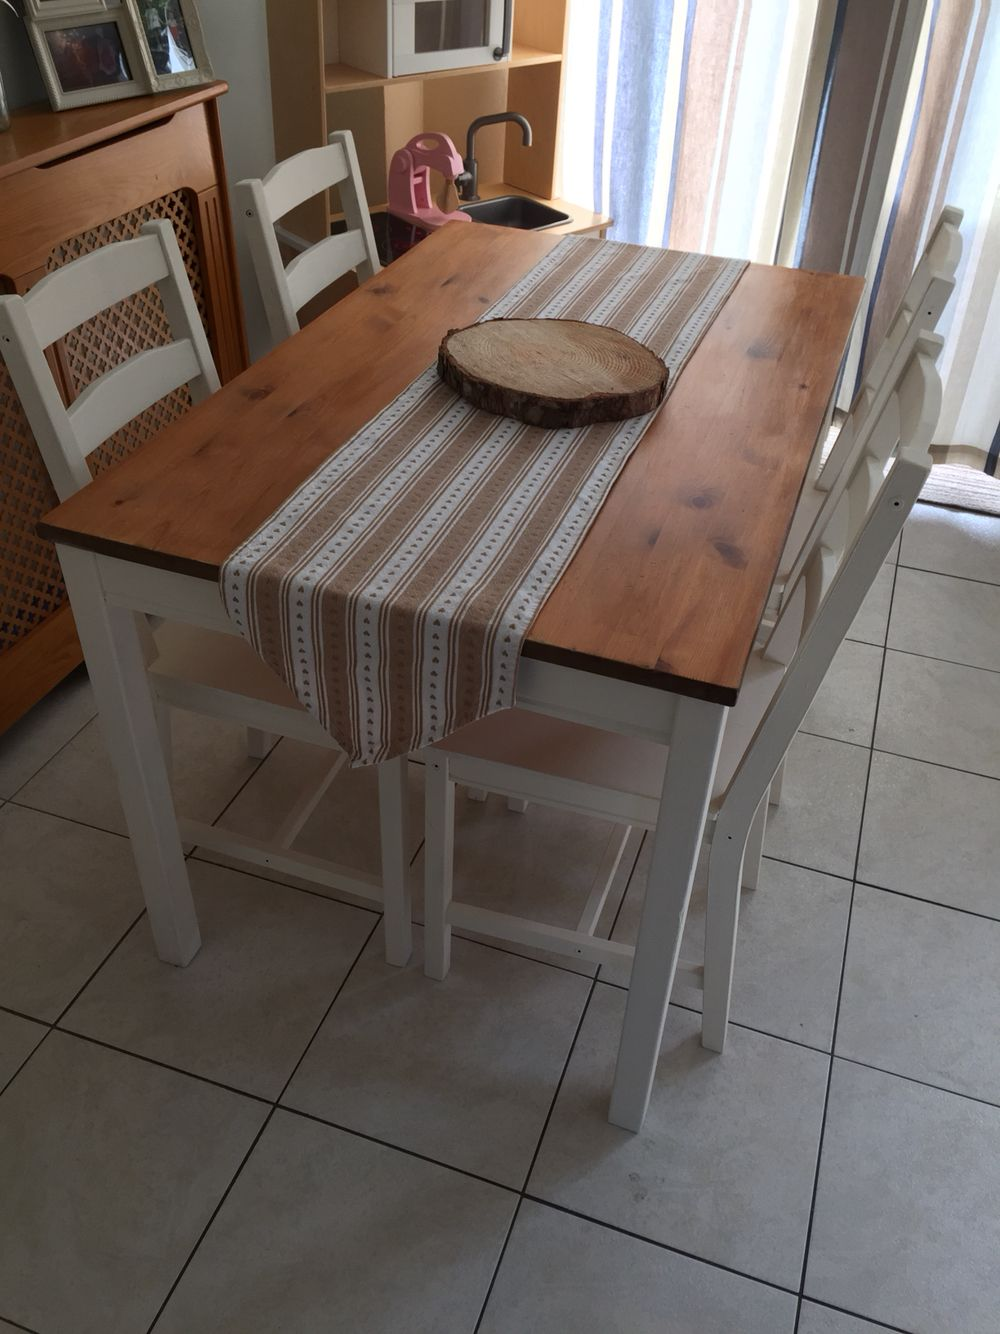 ikea jokkmokk dining table and chairs painted in